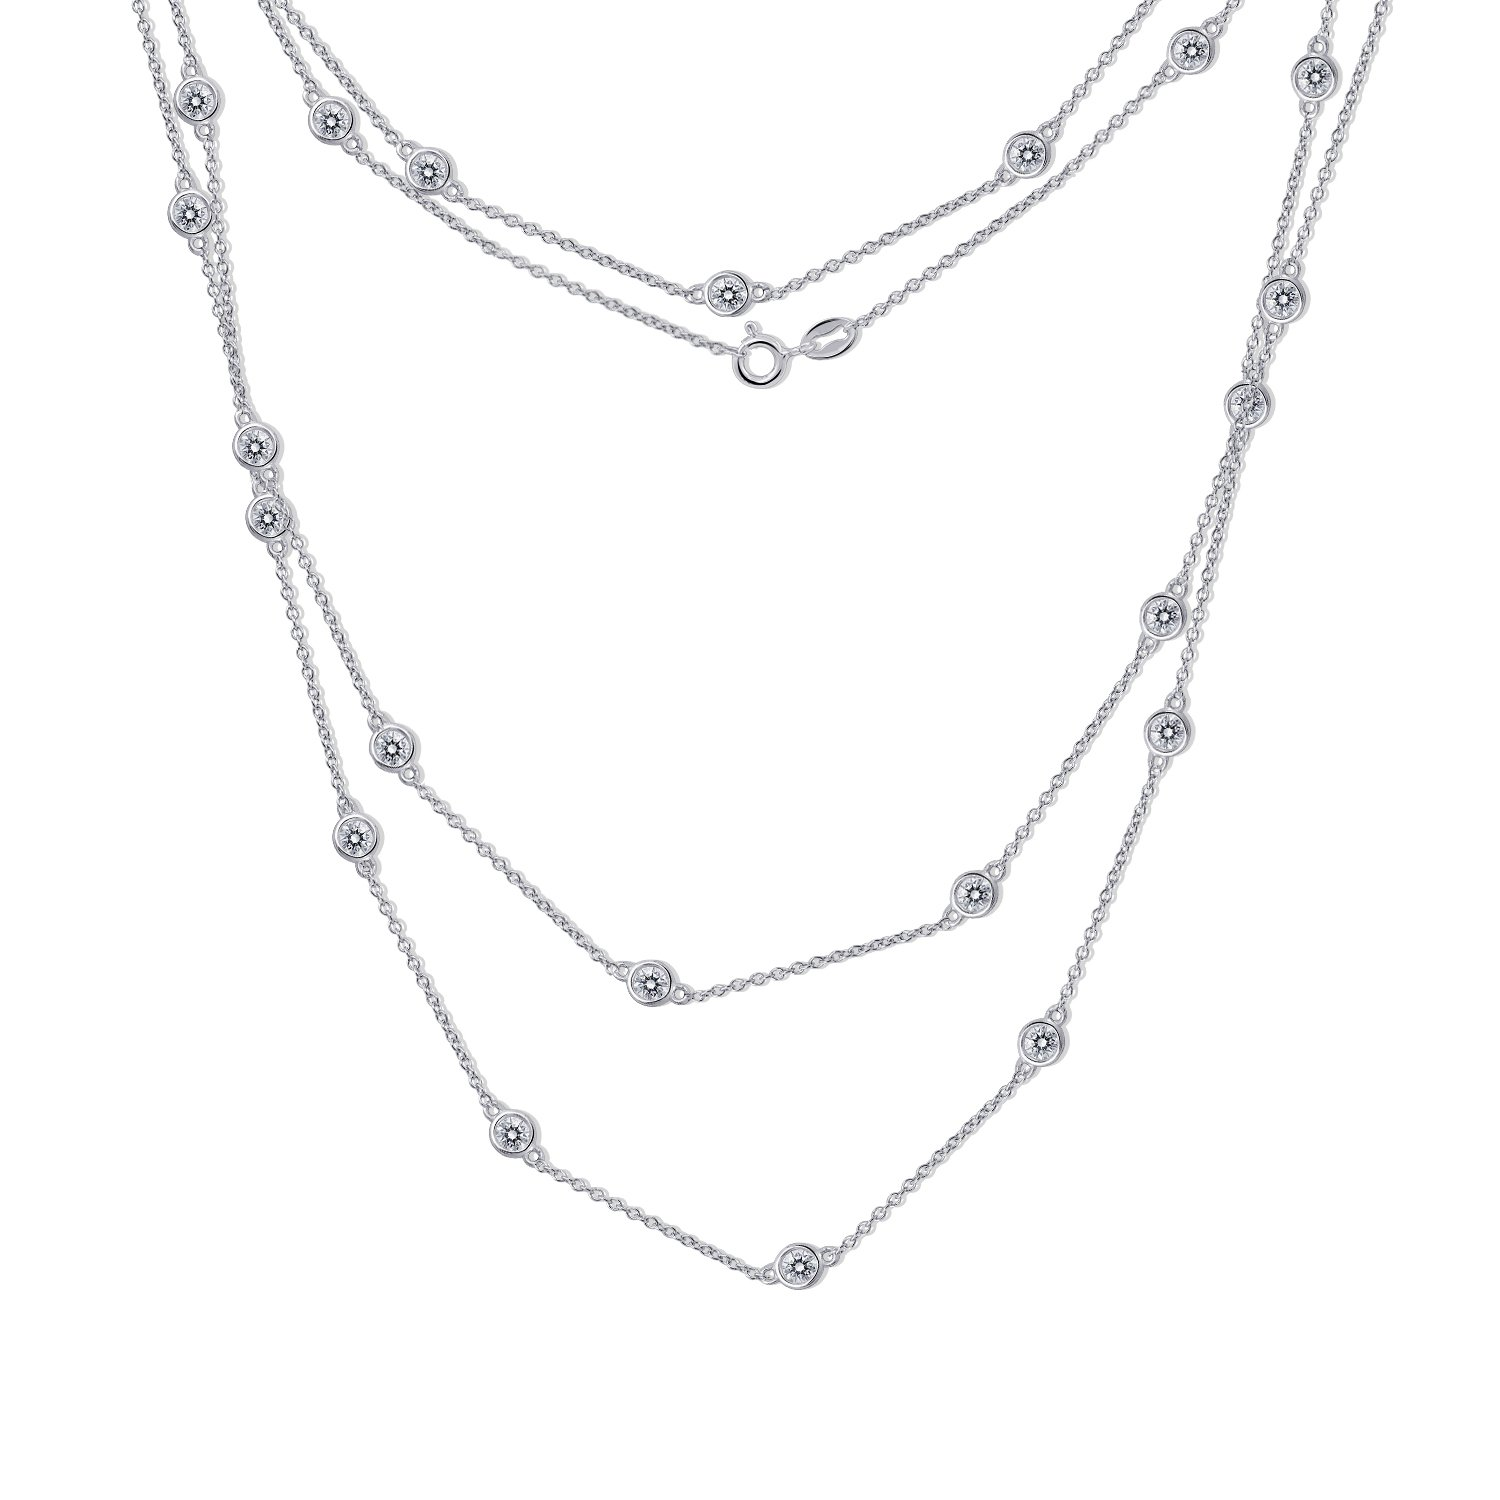 Diamonbliss Sterling Silver 6.6 ct Cubic Zirconia Necklace